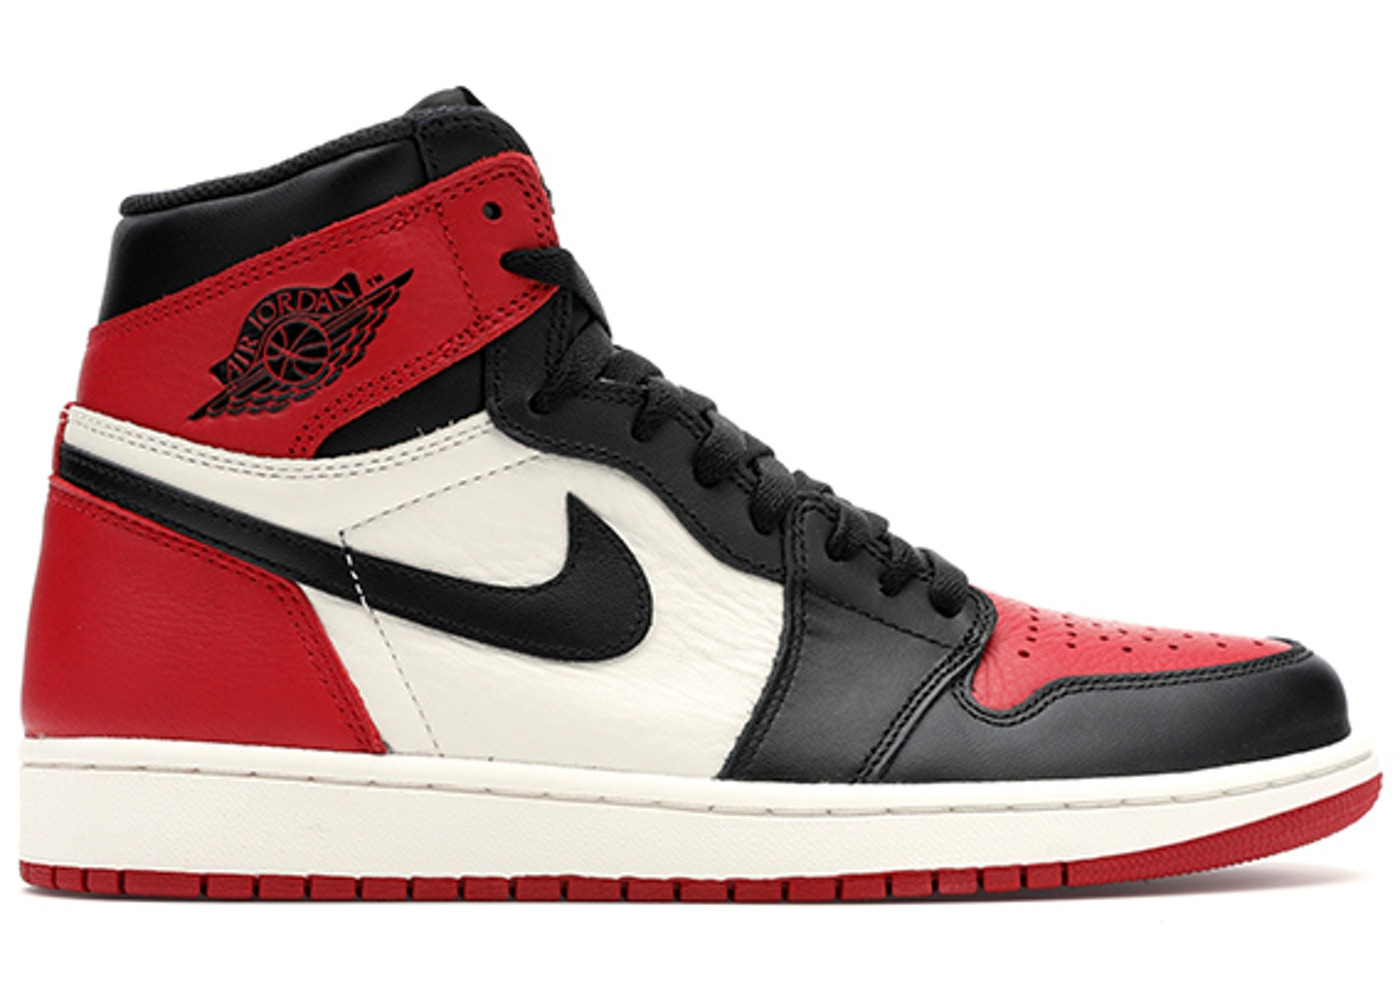 Jordan 1 Retro High Bred Toe - 555088-610 7c19876fc